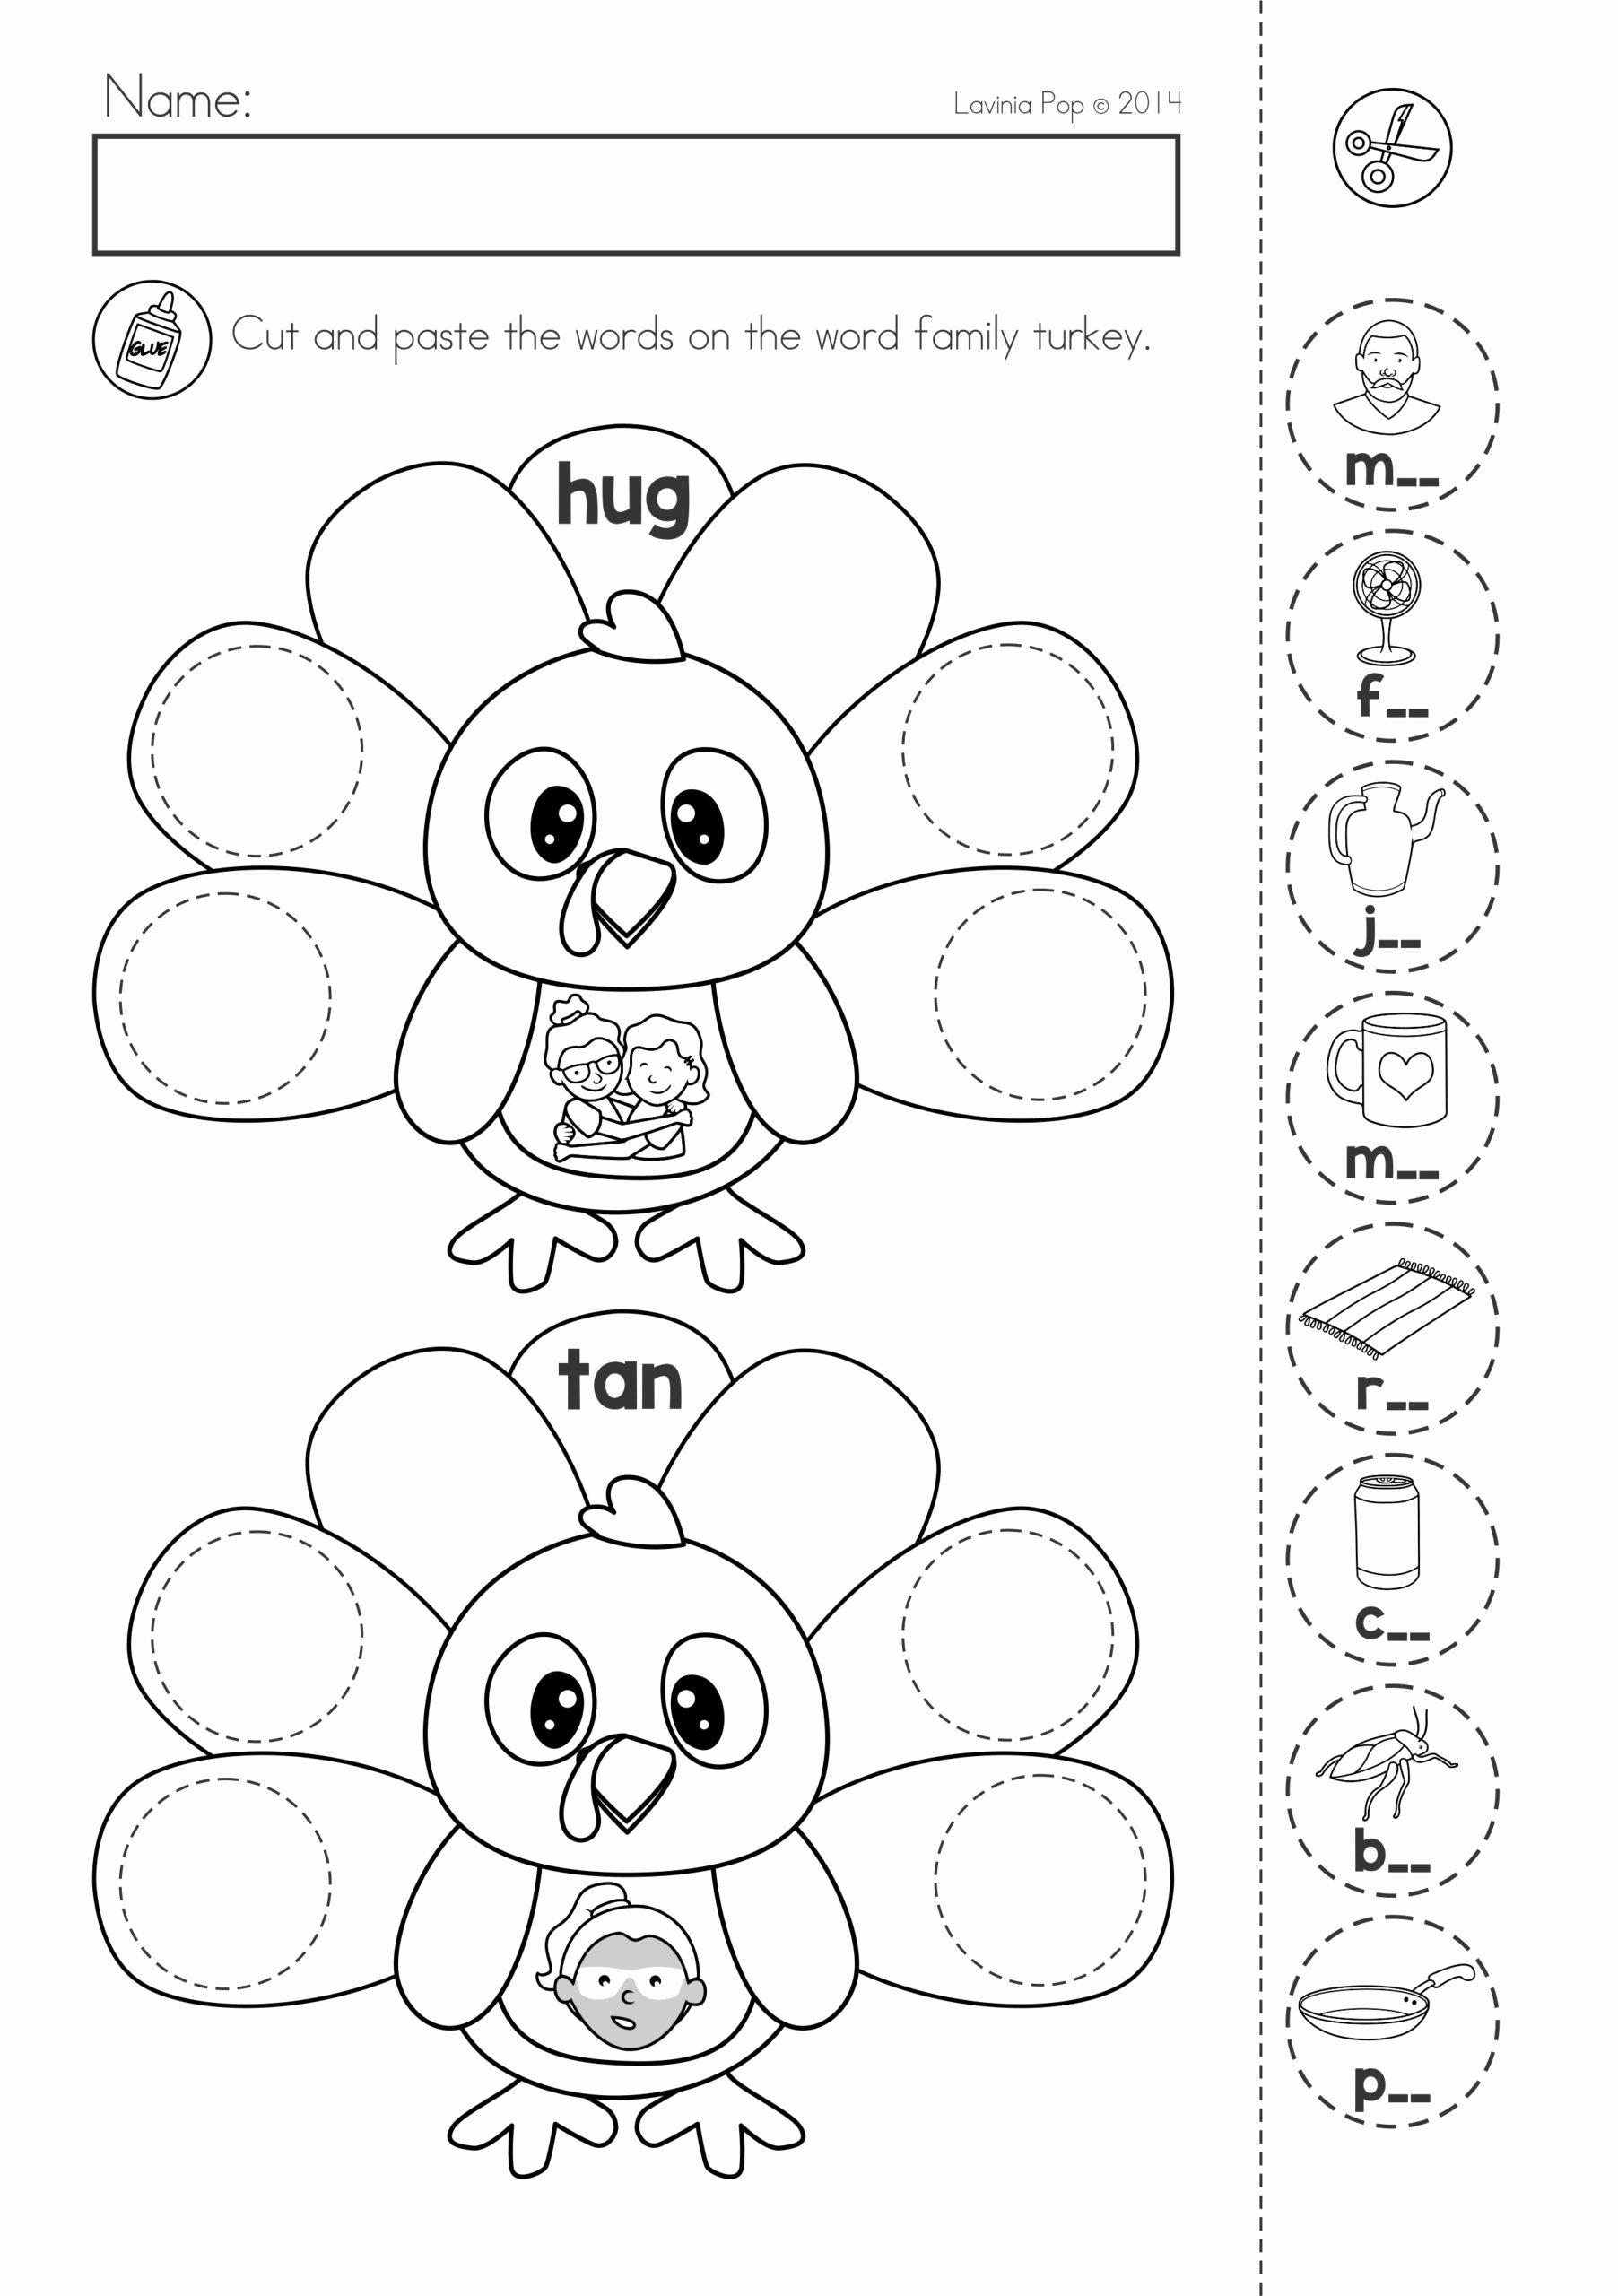 Printable Cut and Paste Worksheets Kids Free Preschool Printables Cut and Paste Worksheet Four Line